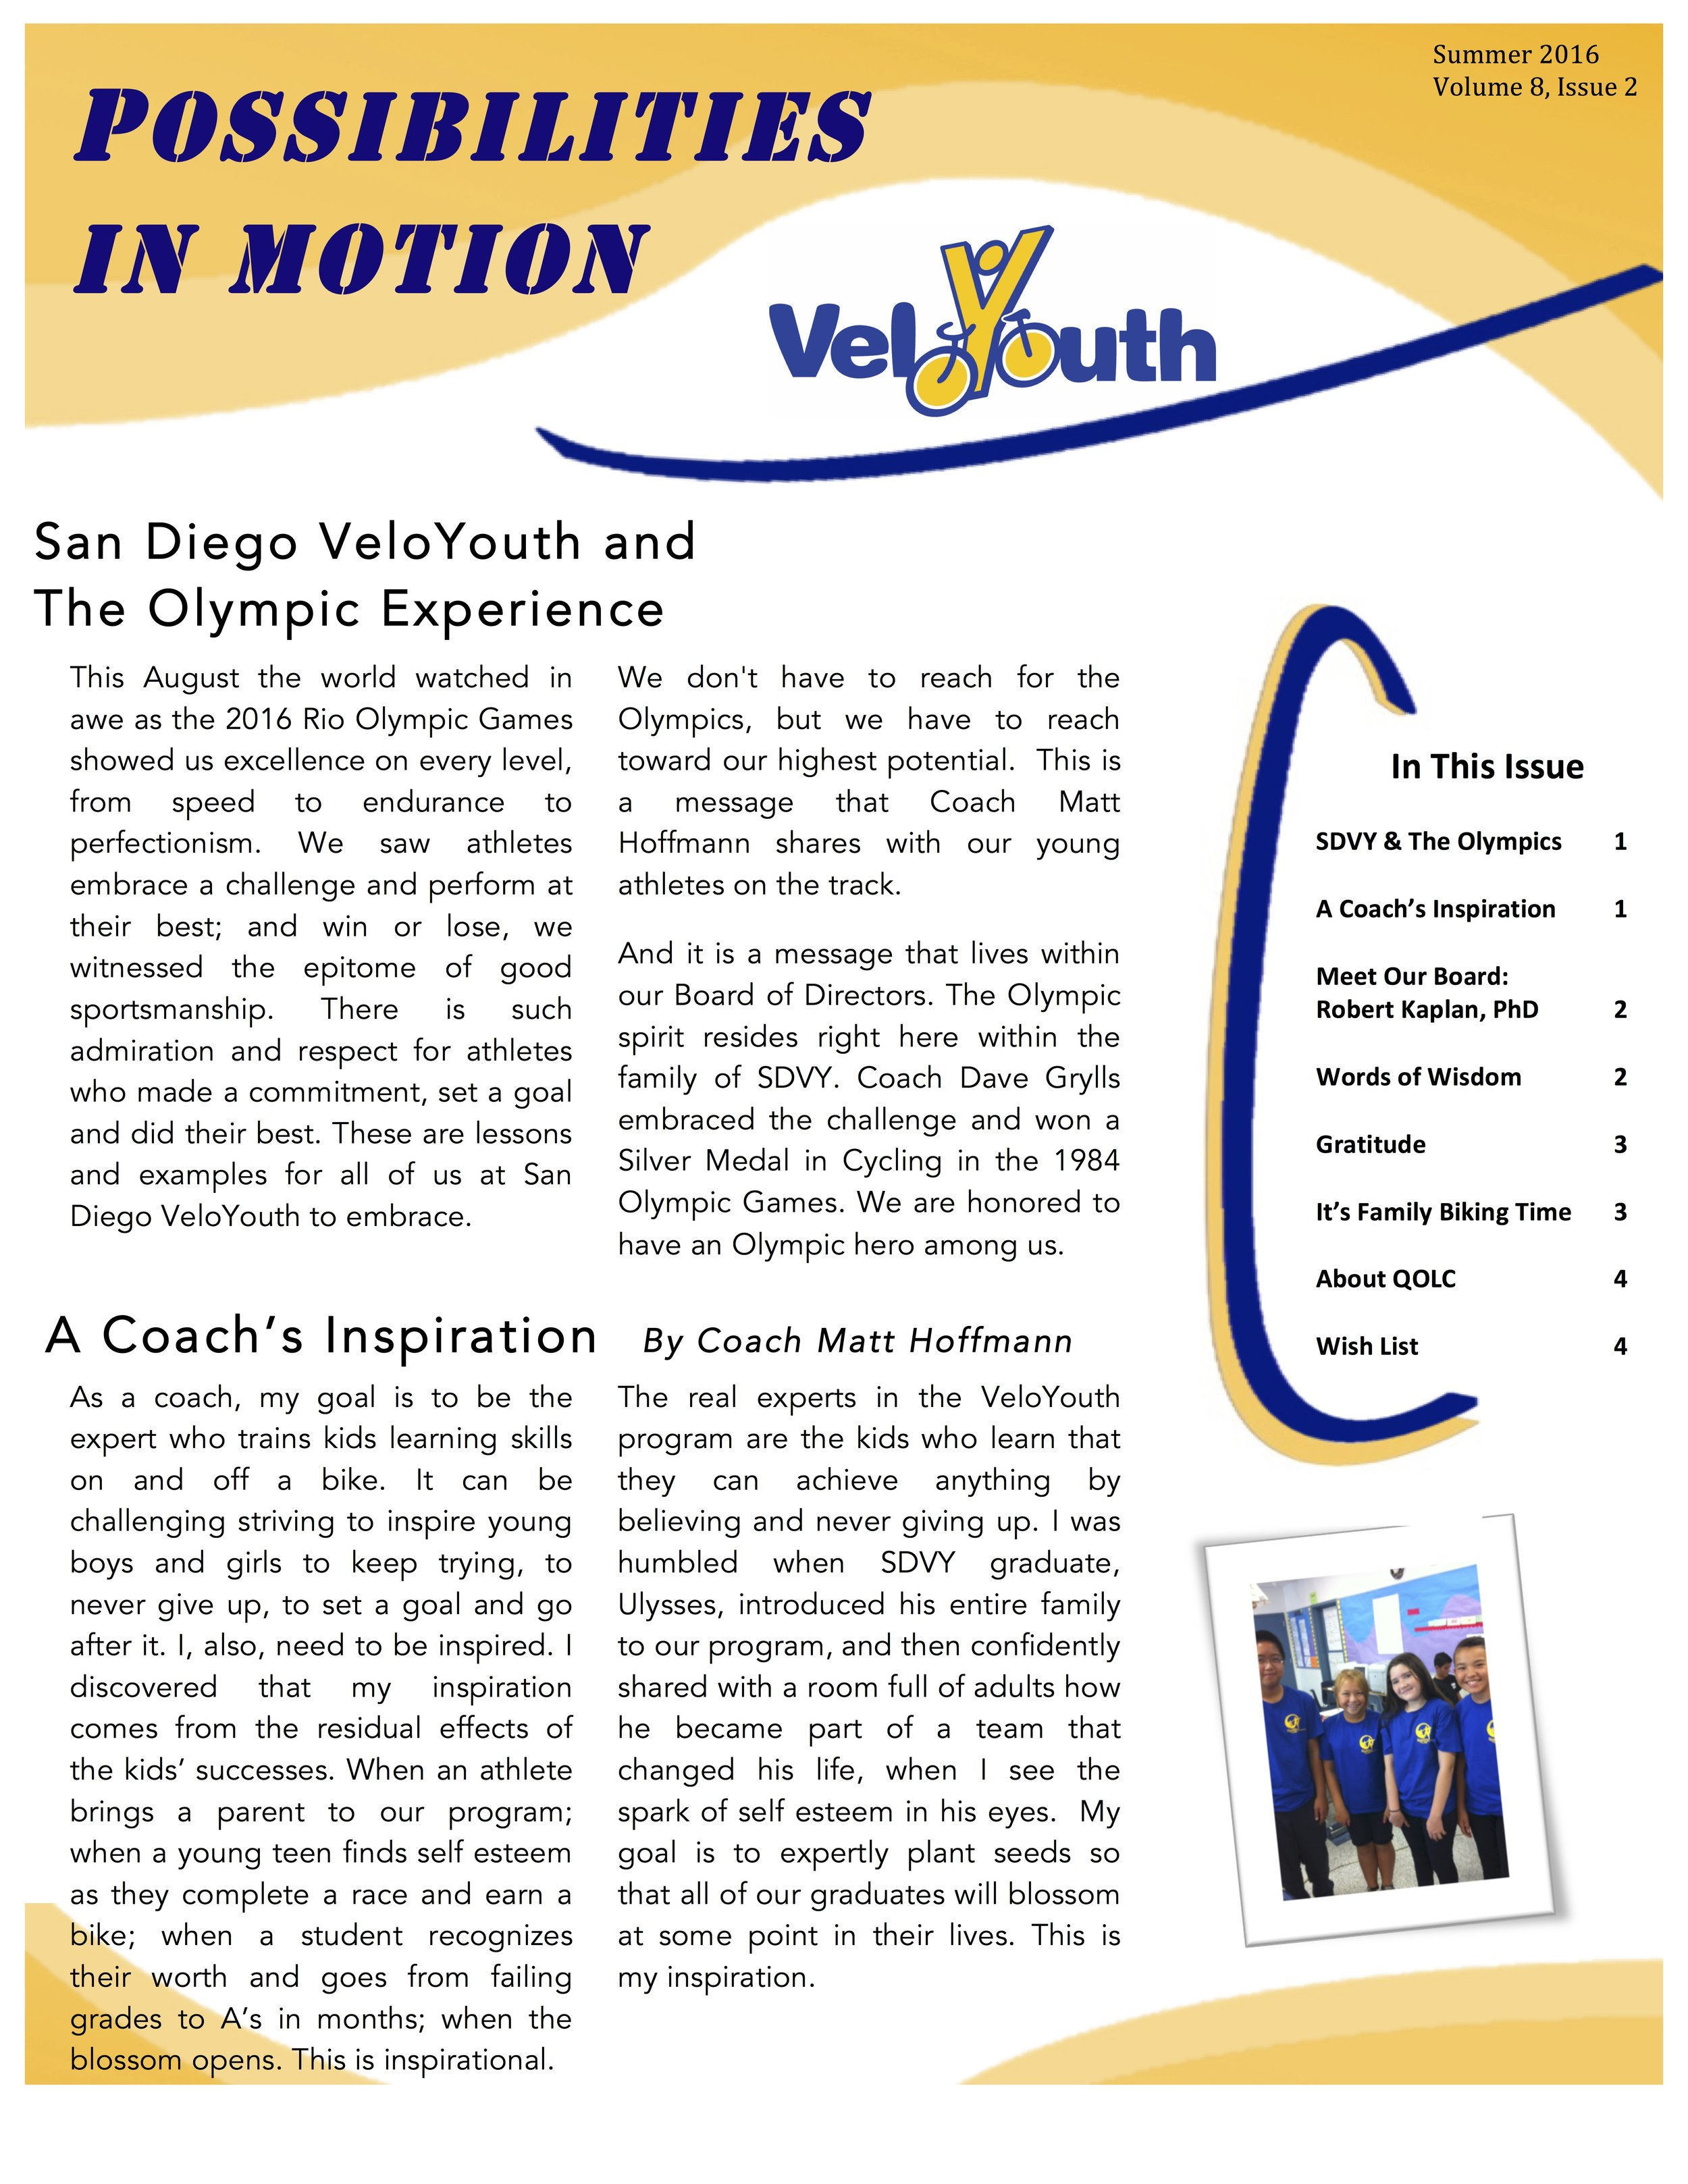 Possibilities In Motion 2016-2 Page 1.jpg